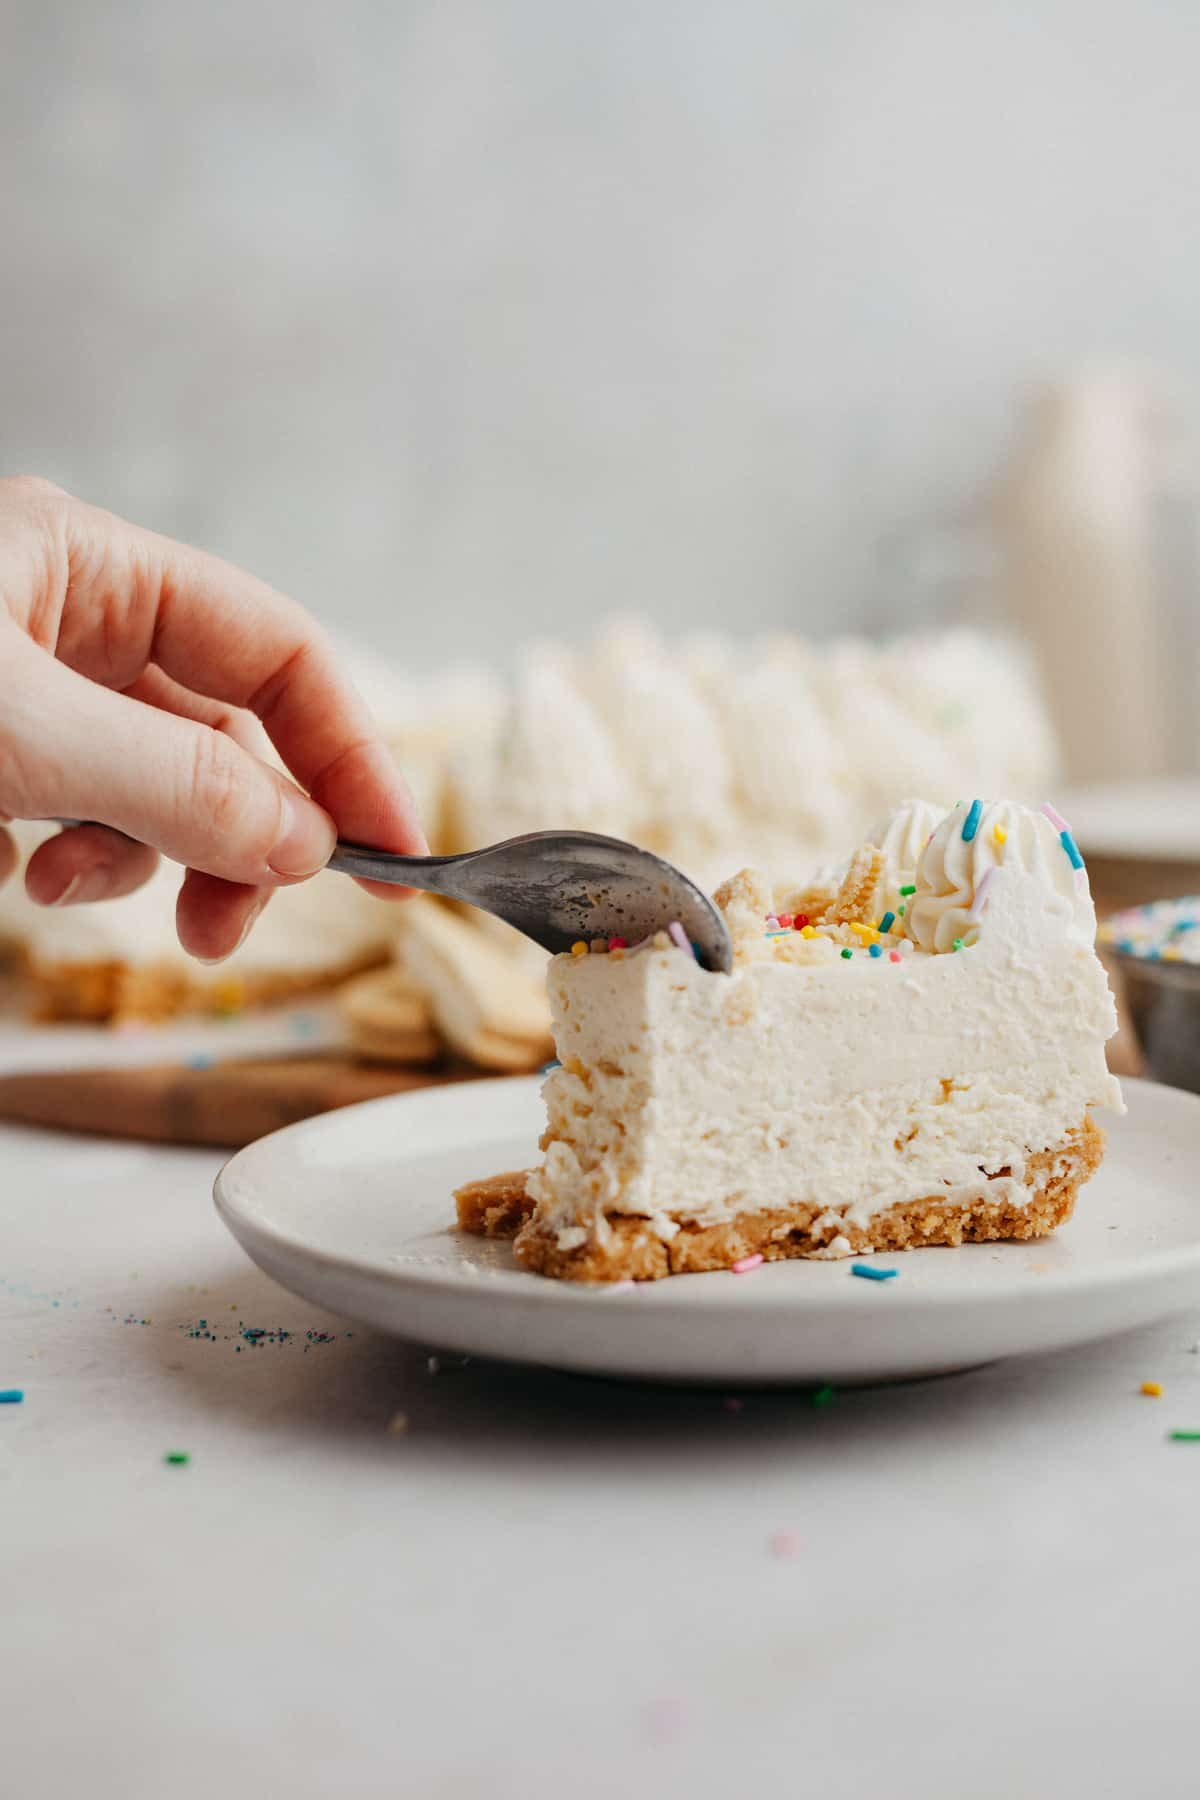 A slice of no bake cheesecake covered in rainbow sprinkles on a small beige plate. A hand is holding a small silver spoon and is cutting into the slice